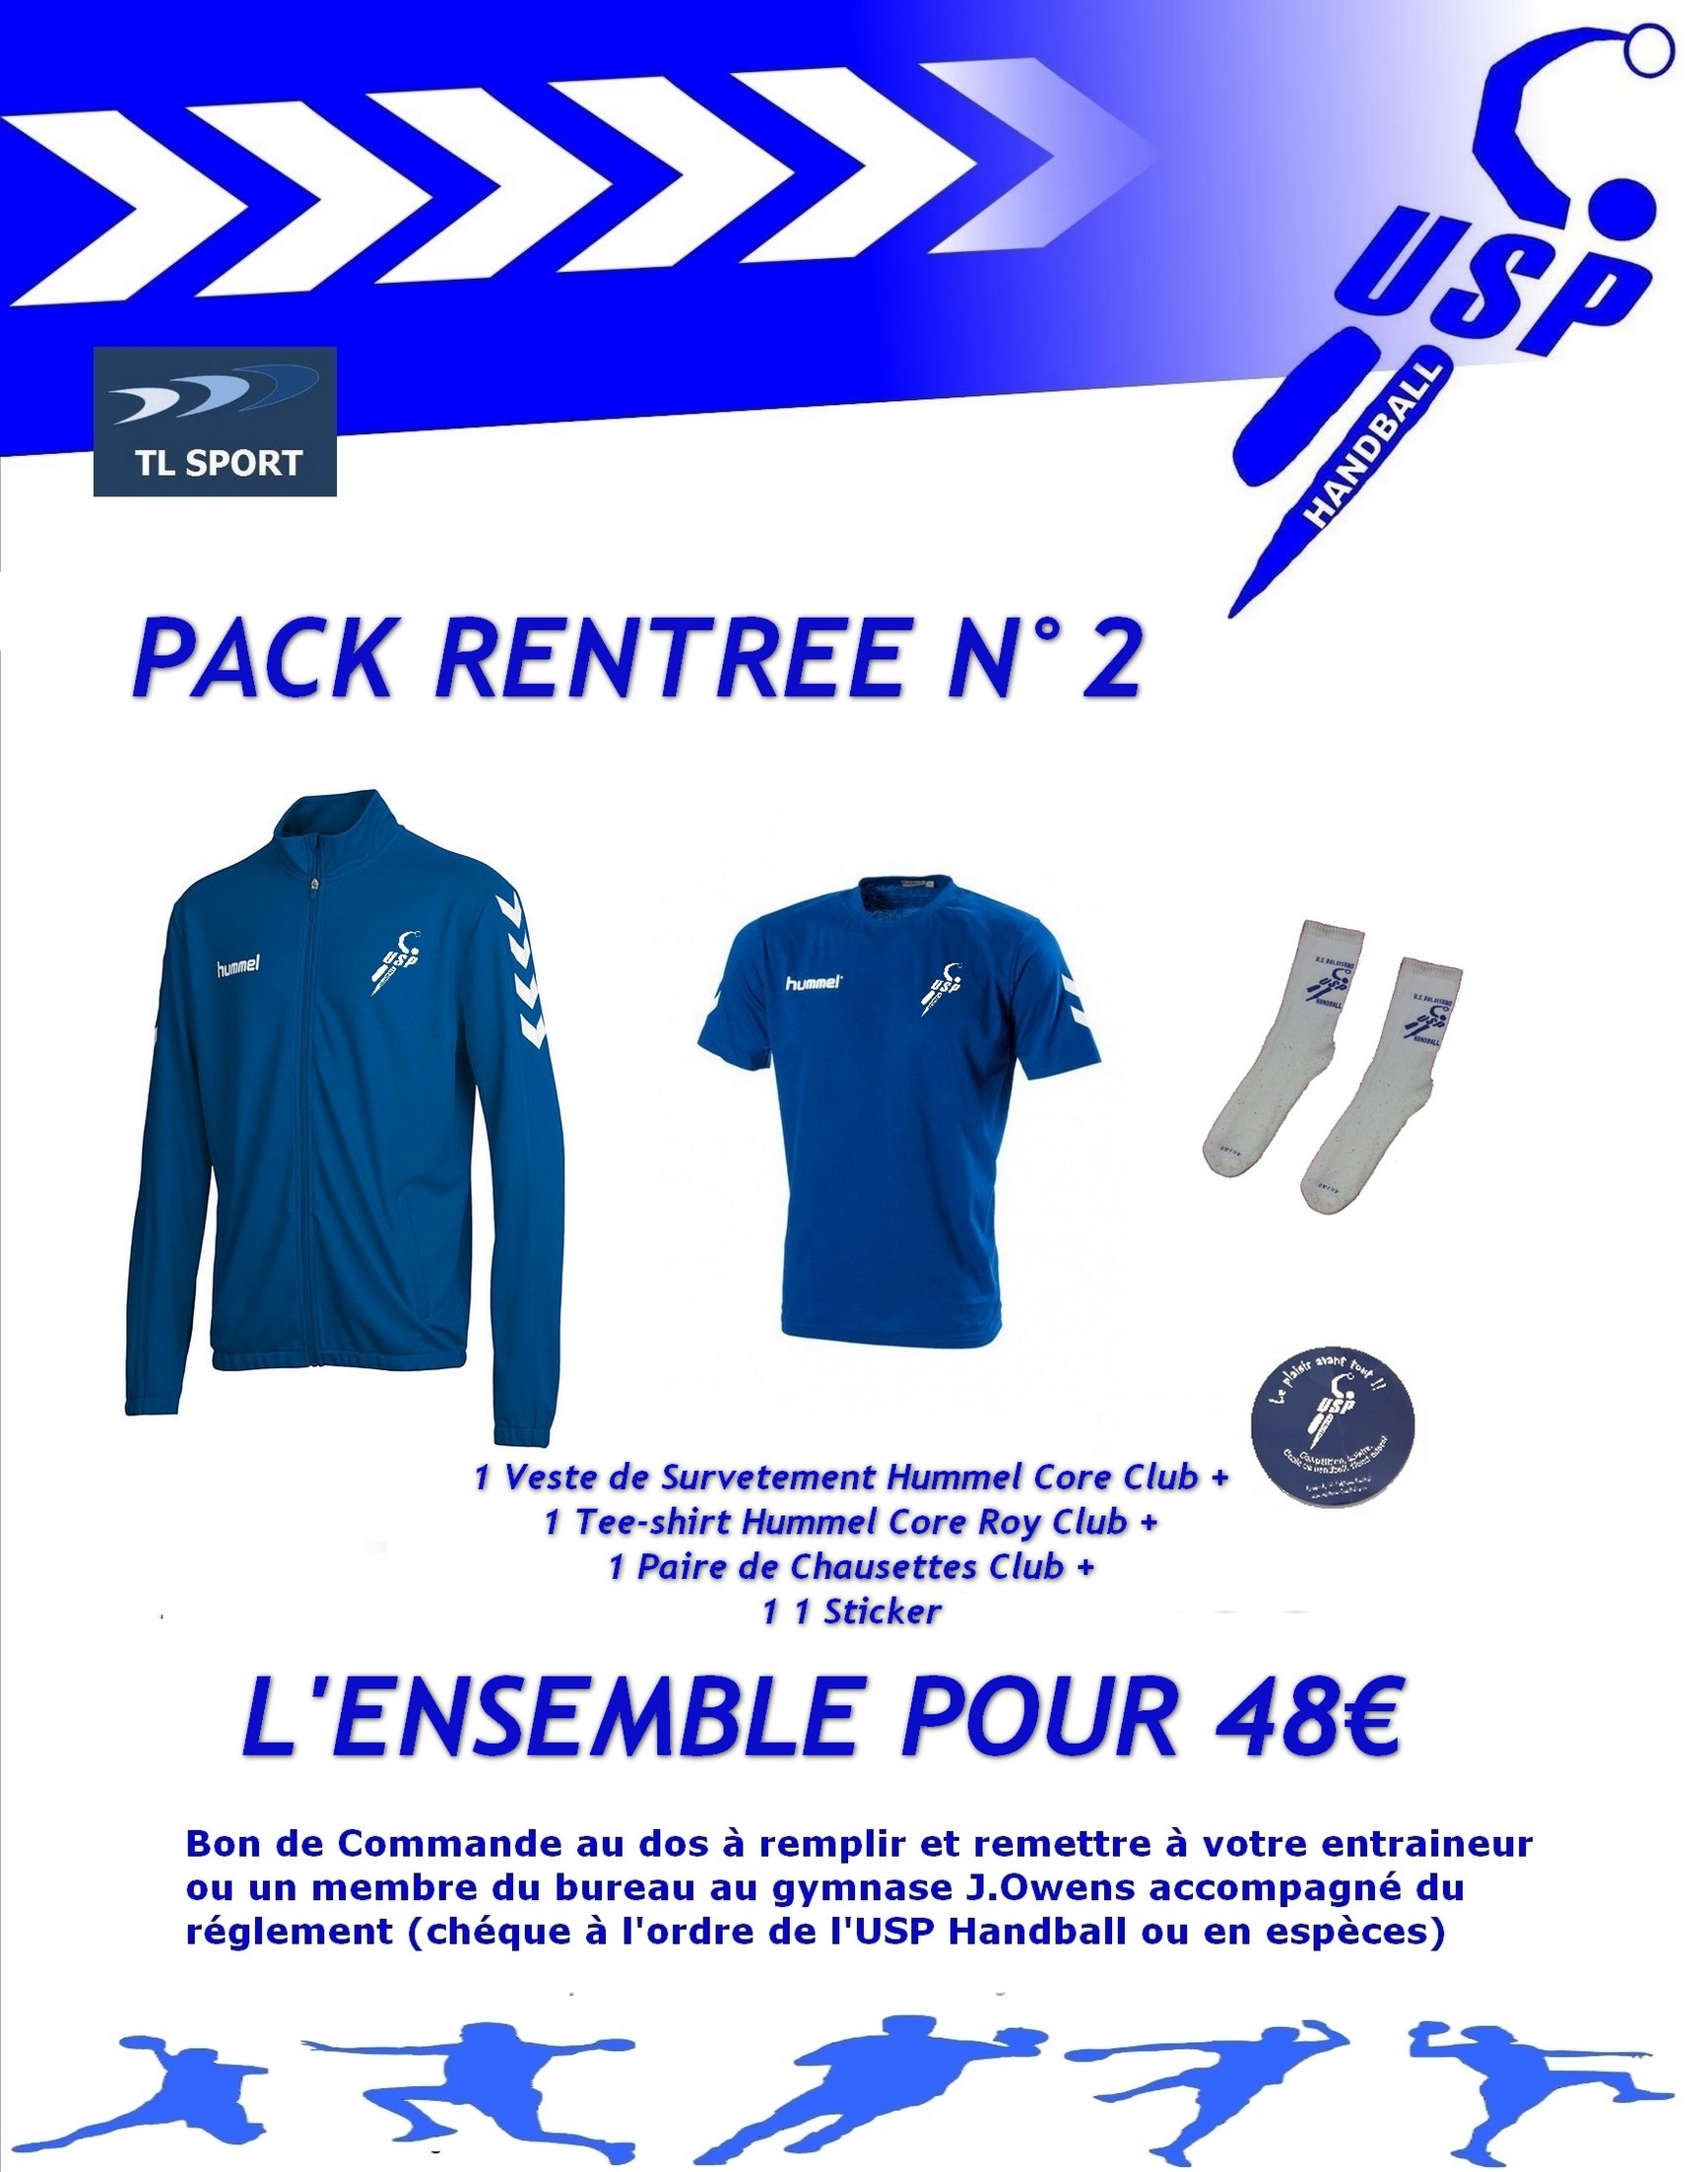 Pack rentree 2 2018